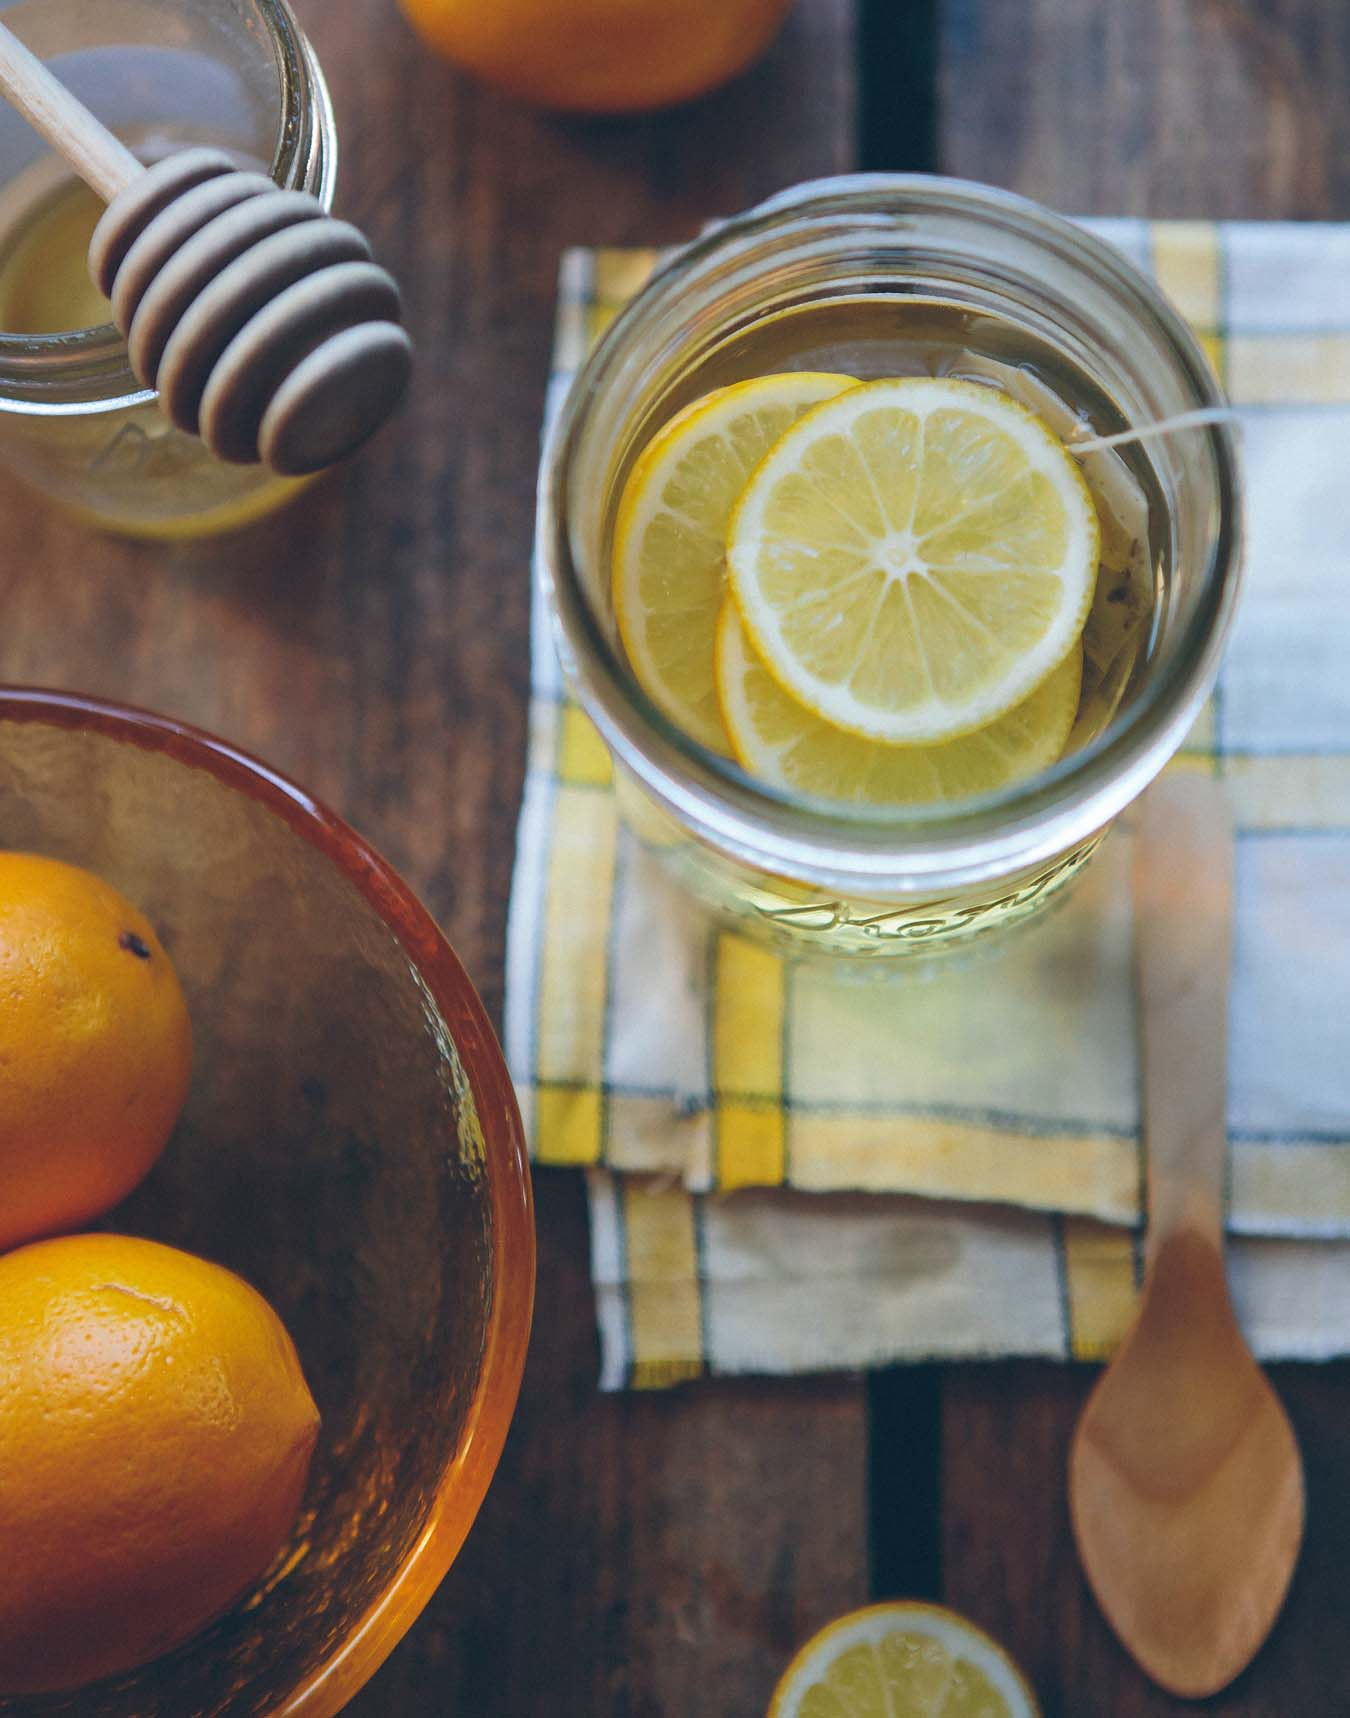 Lemon tea in a glass mug stands on a cloth - honey jar and orange citrus fruits next to it